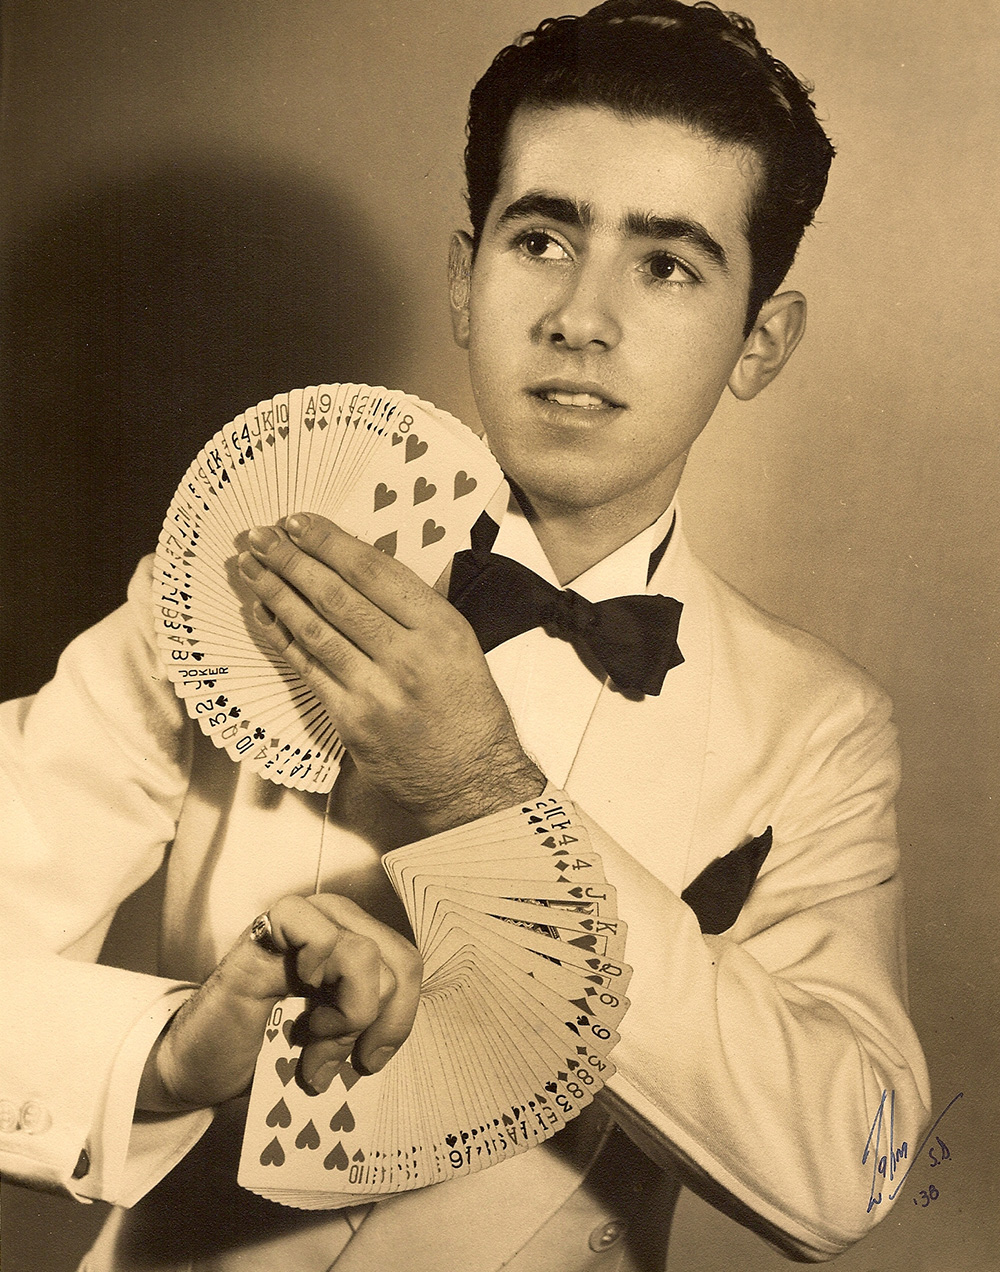 18 year old Sid, professional magician.